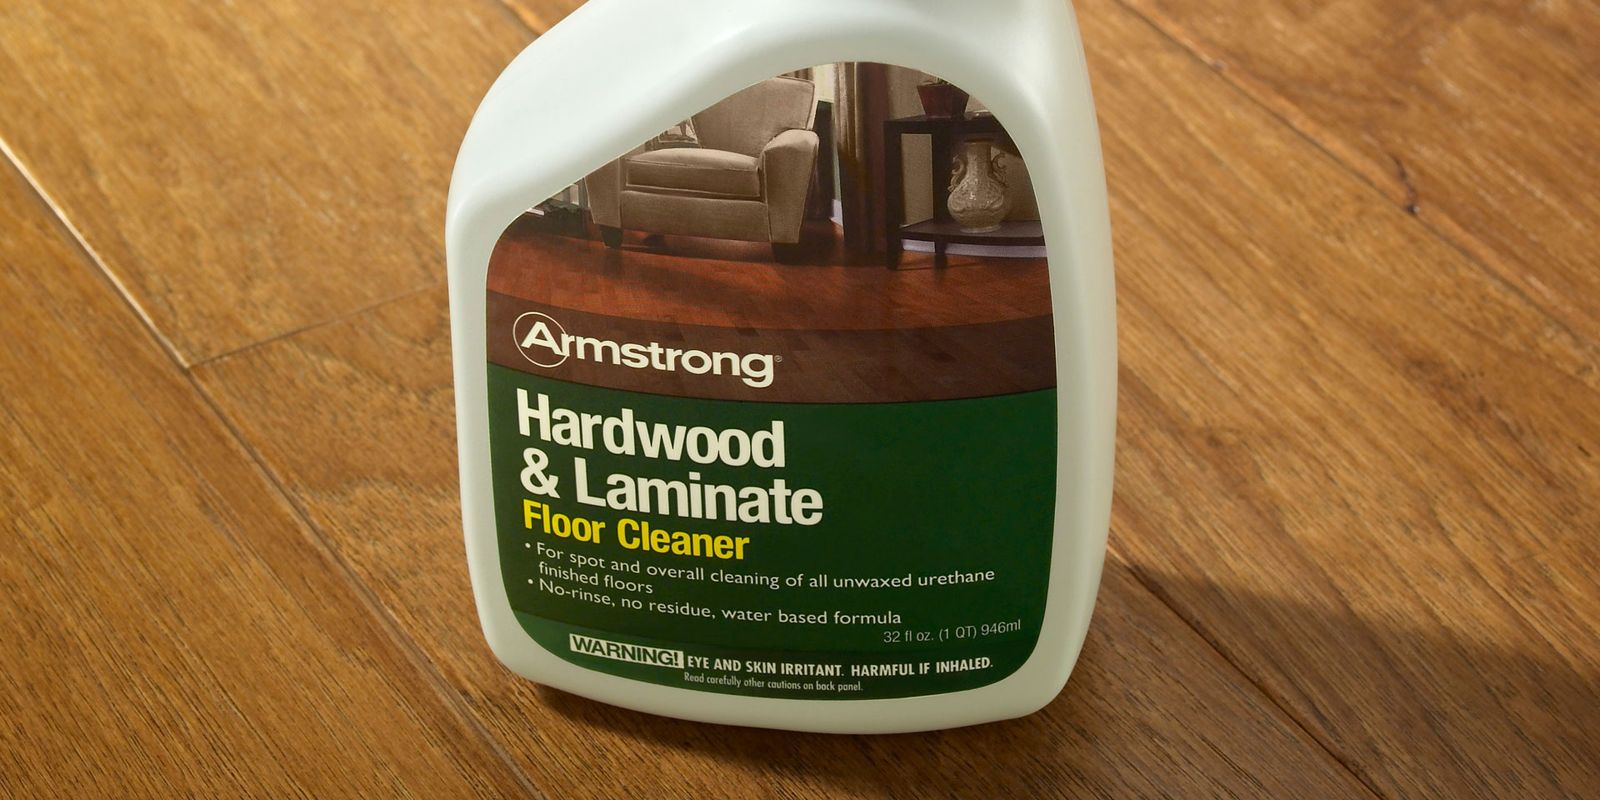 Bruce Laminate Floor Cleaner giovinos flooring tunkhannock pa flooring carpets and rugs Armstrong Hardwood Floor Cleaner Review